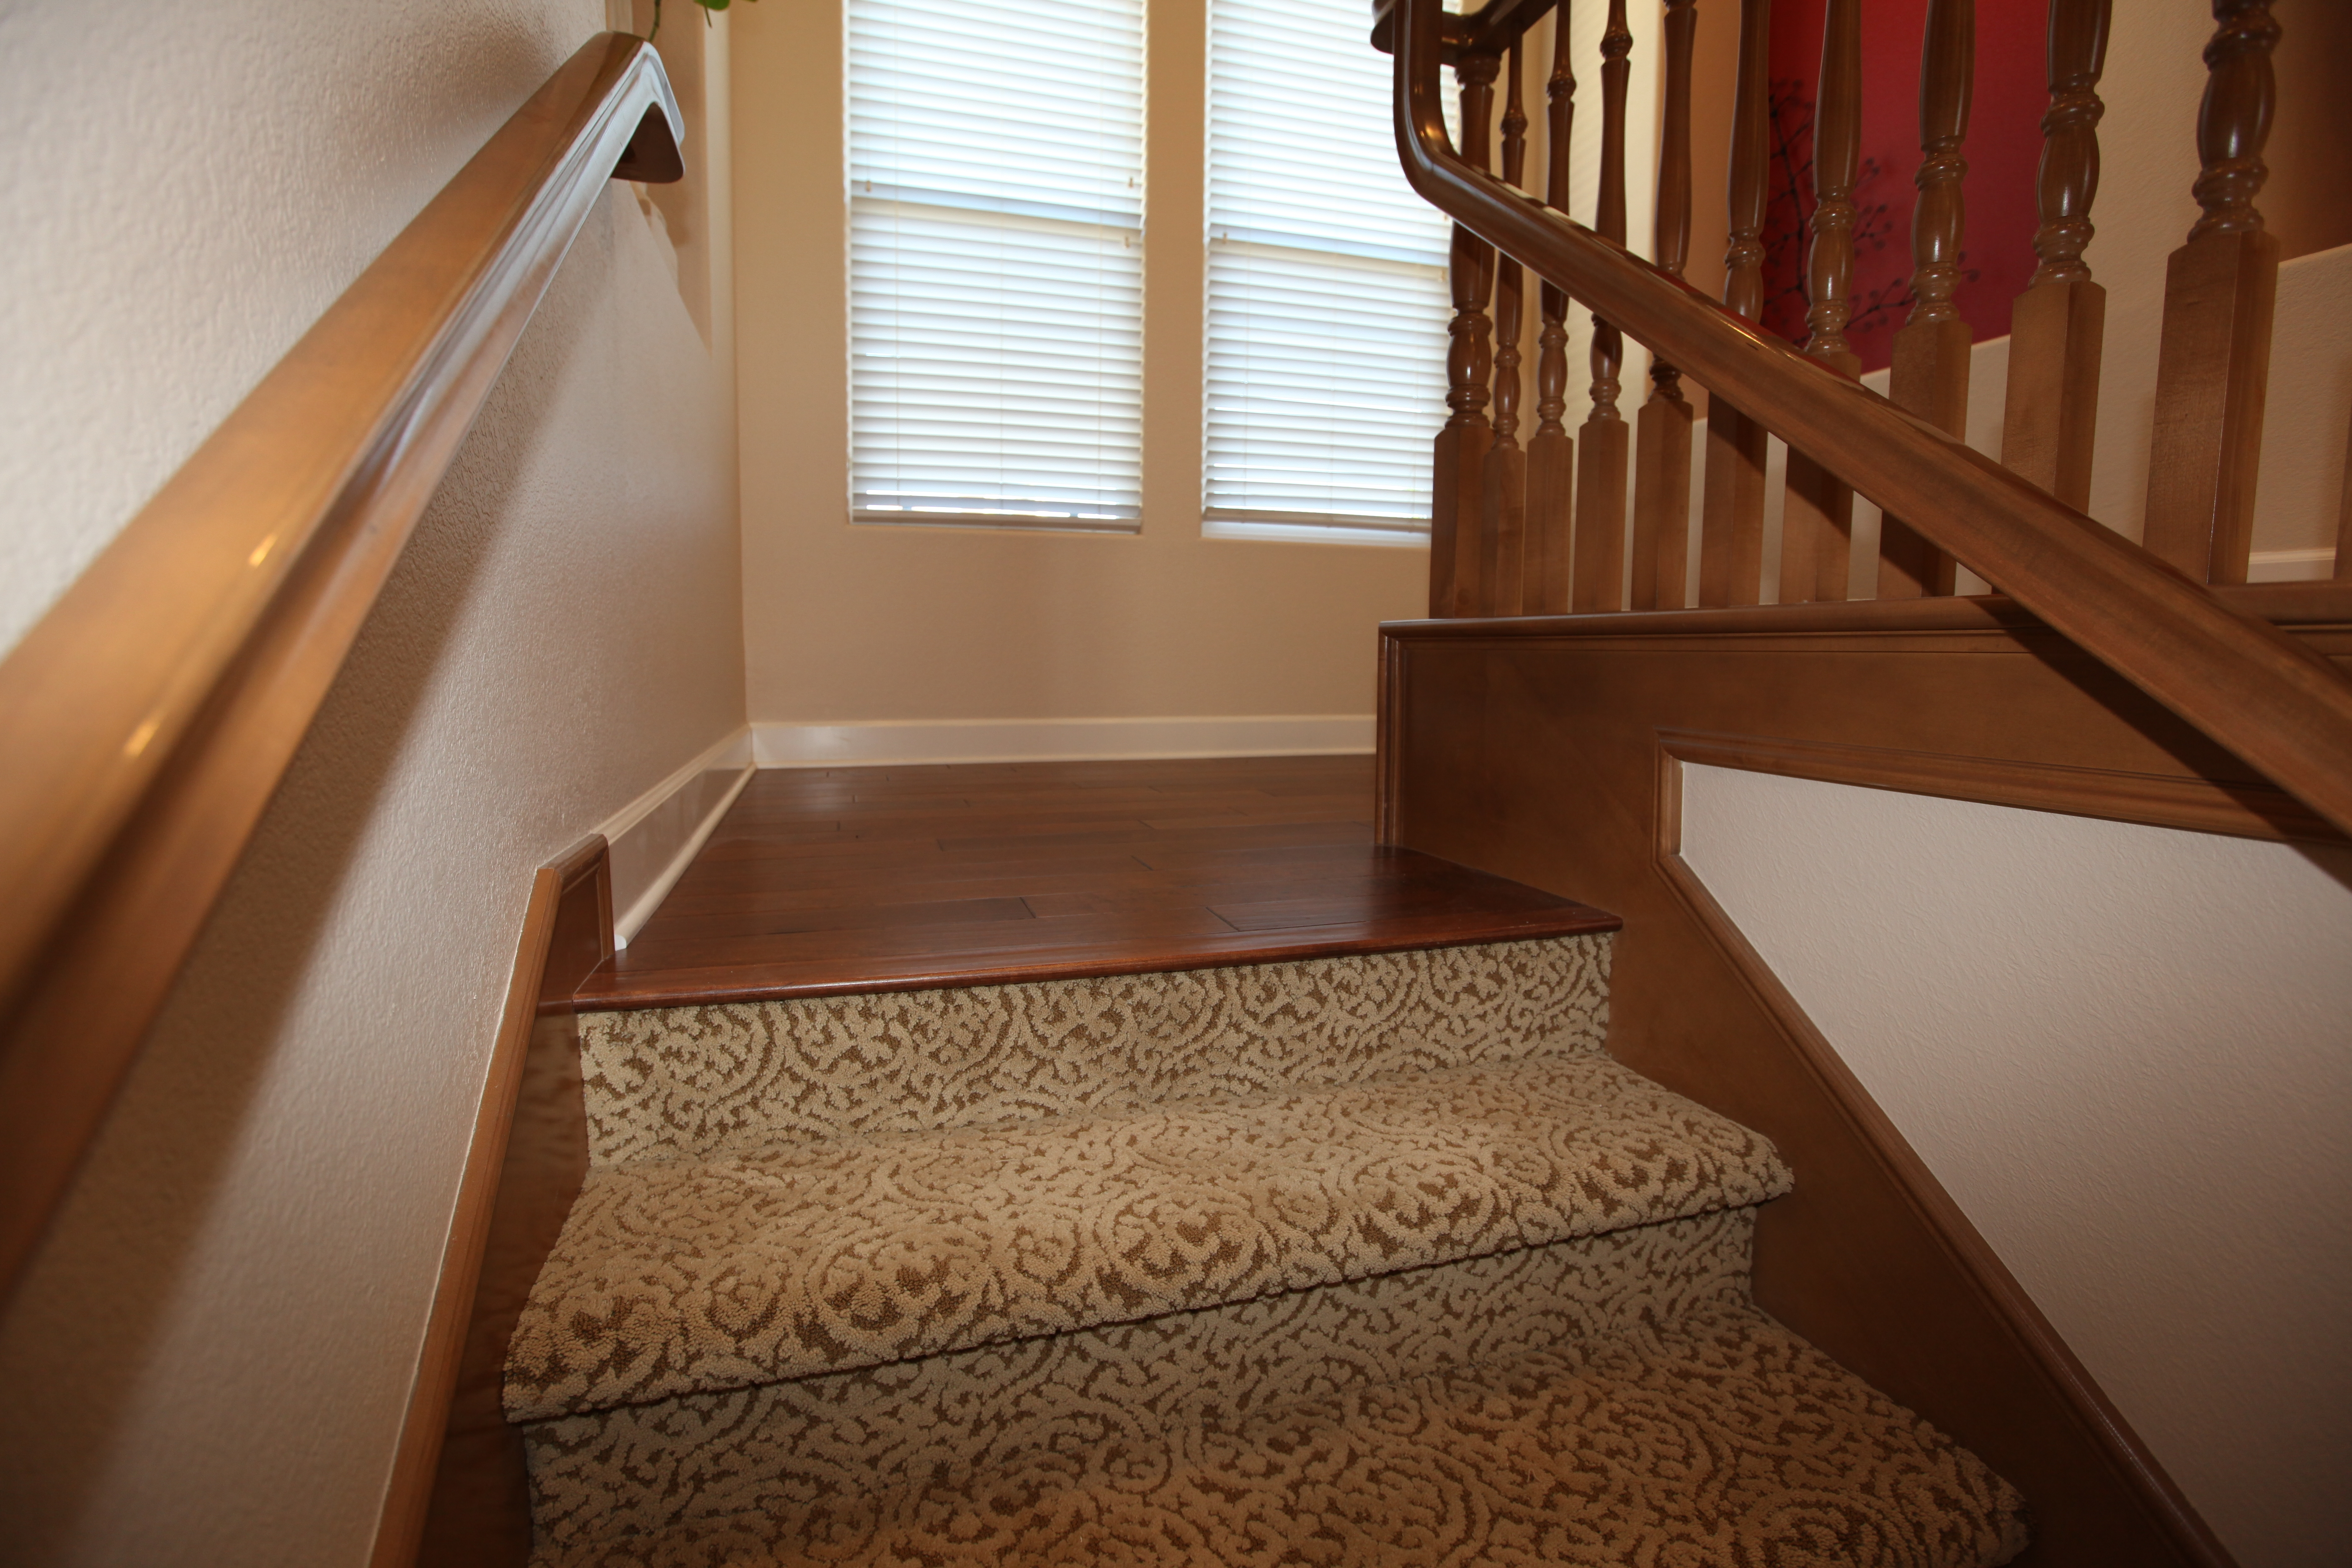 Wood Floor Transition To Stairs